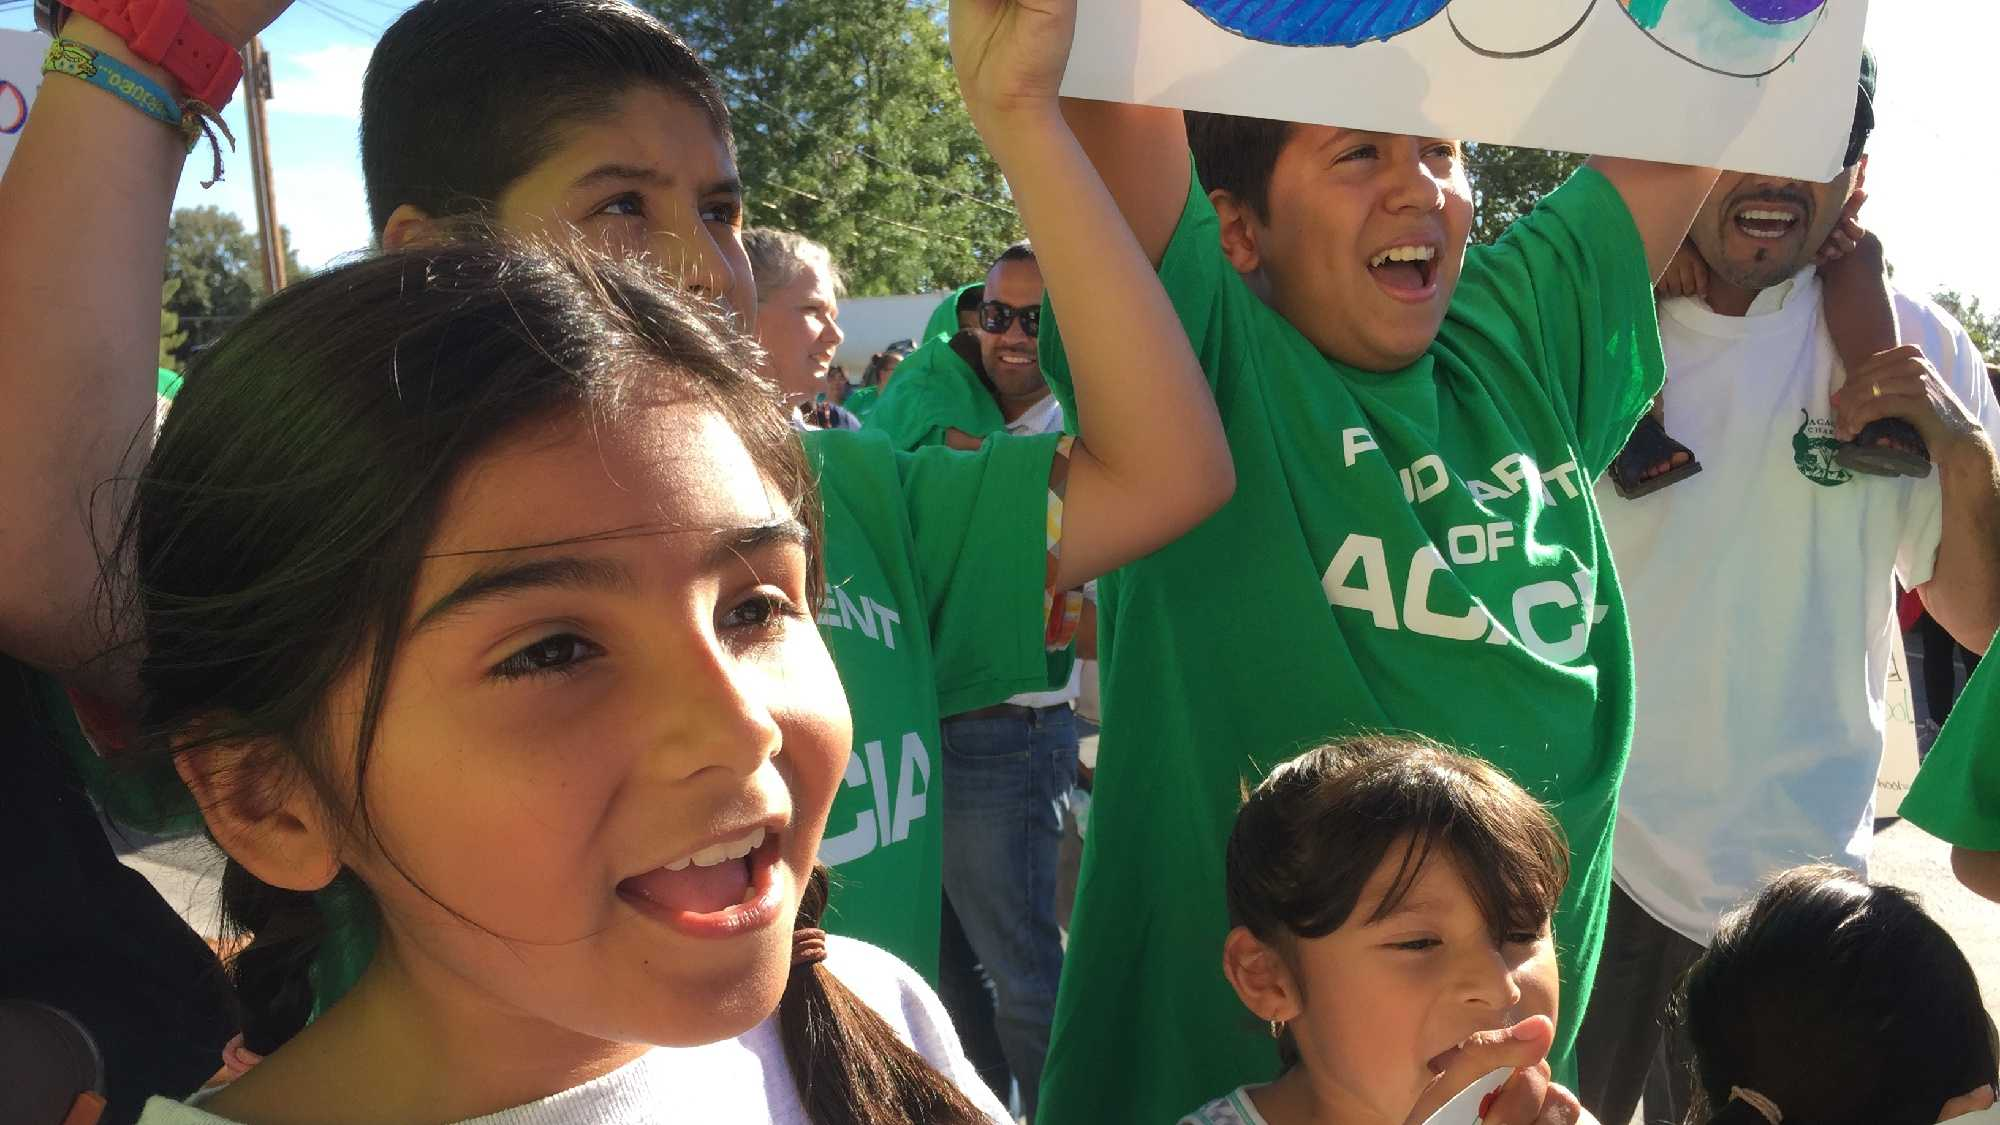 Students and parents protest the closure of two Stockton schools on Thursday, July 7, 2016.